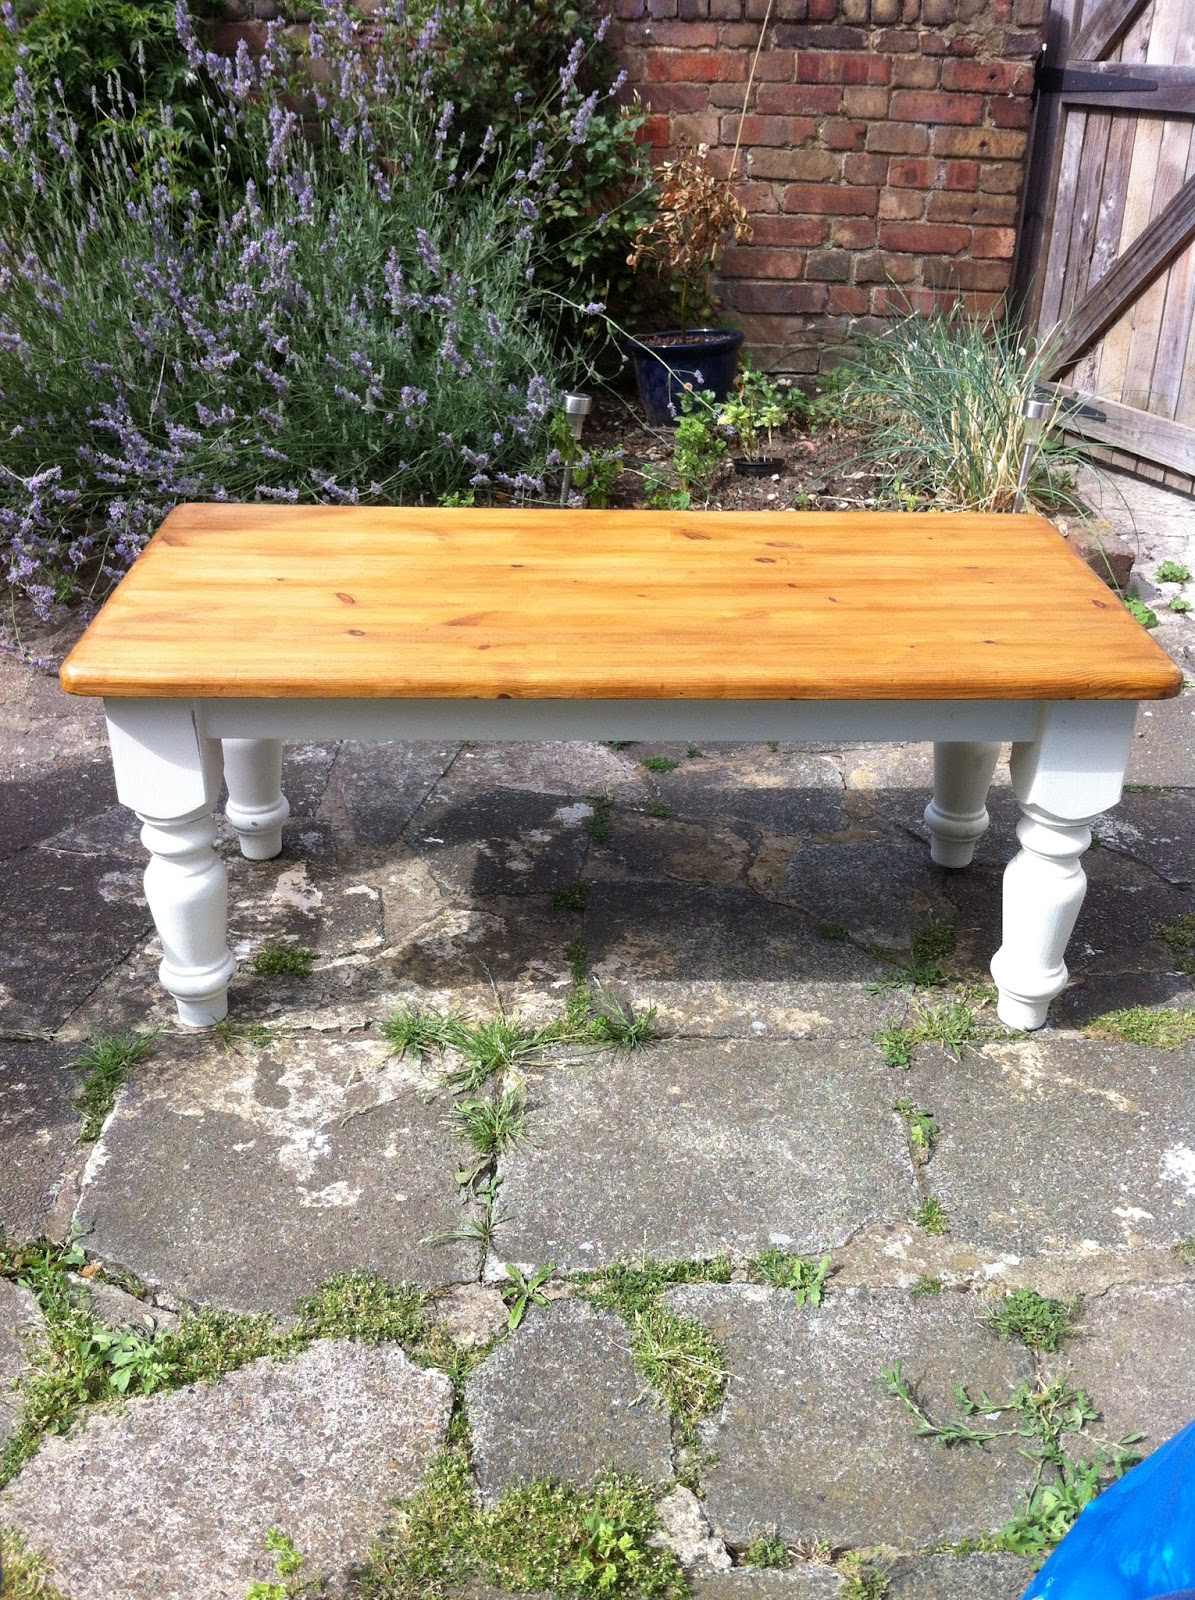 ... Coffee Table Then Painted The Legs Using Annie Sloan Old White Chalk  Paint. After Painting The Legs Two Coats Of Paint, I Waxed And Buffed The  Legs And ...